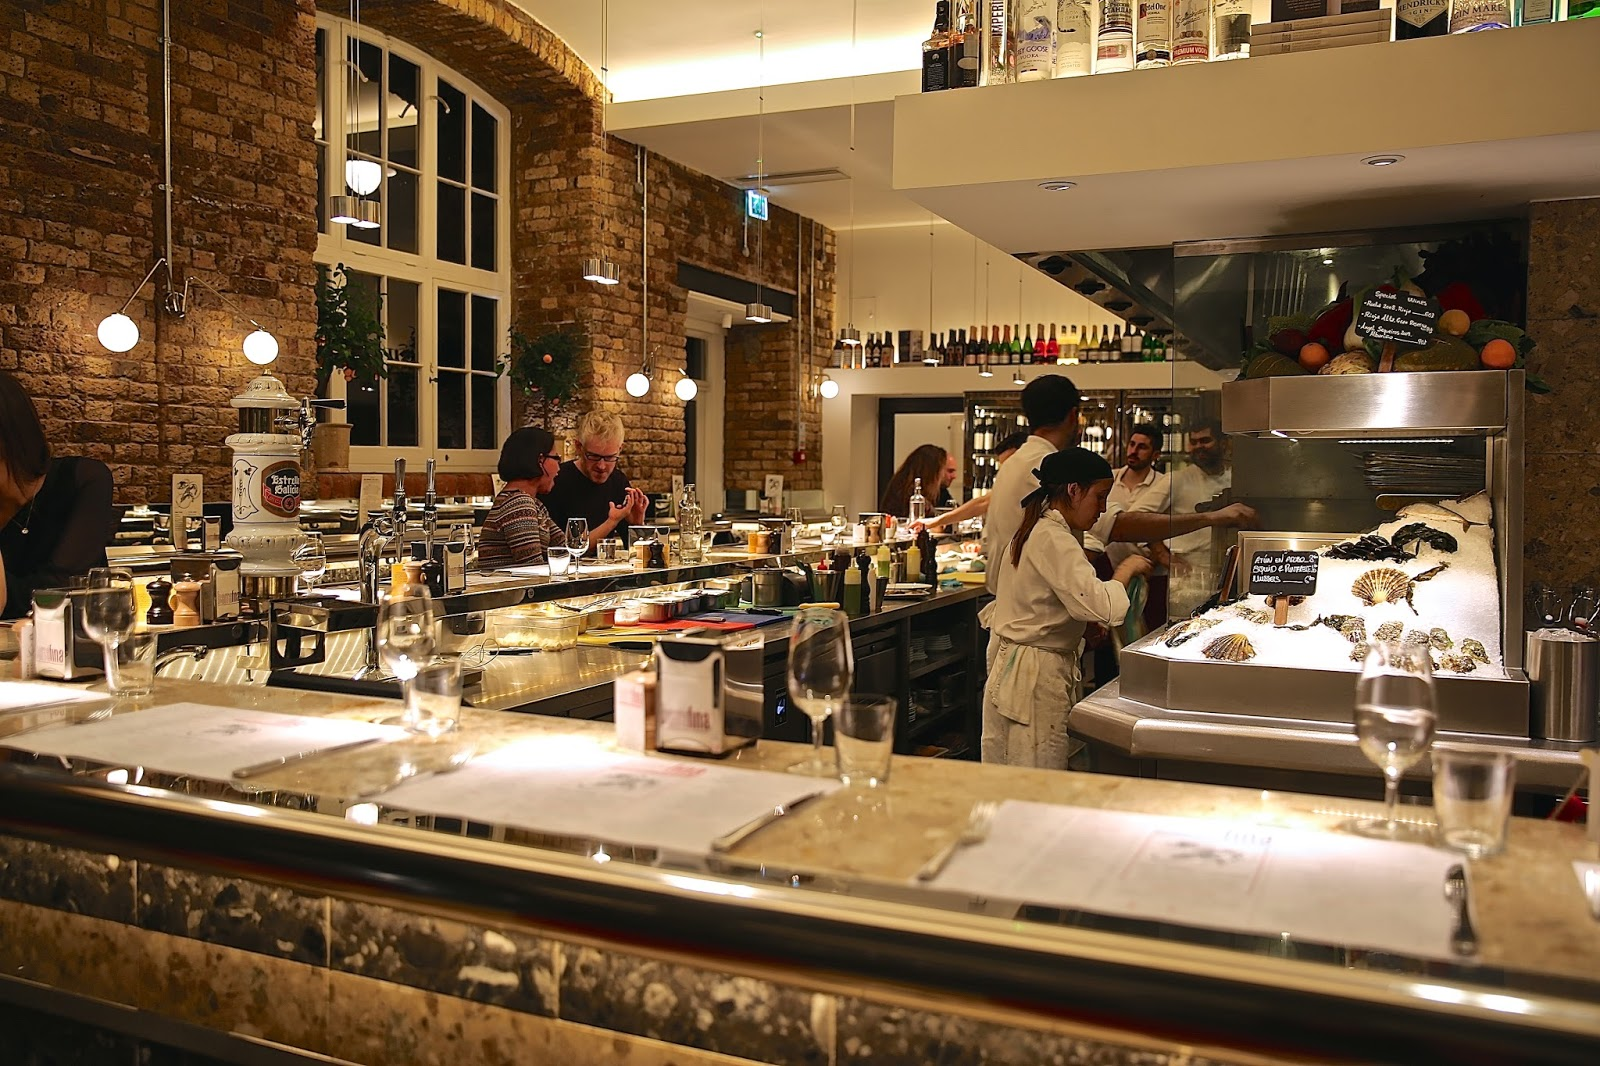 glass kitchen tables oven the london foodie: barrafina drury lane: exquisite spanish ...